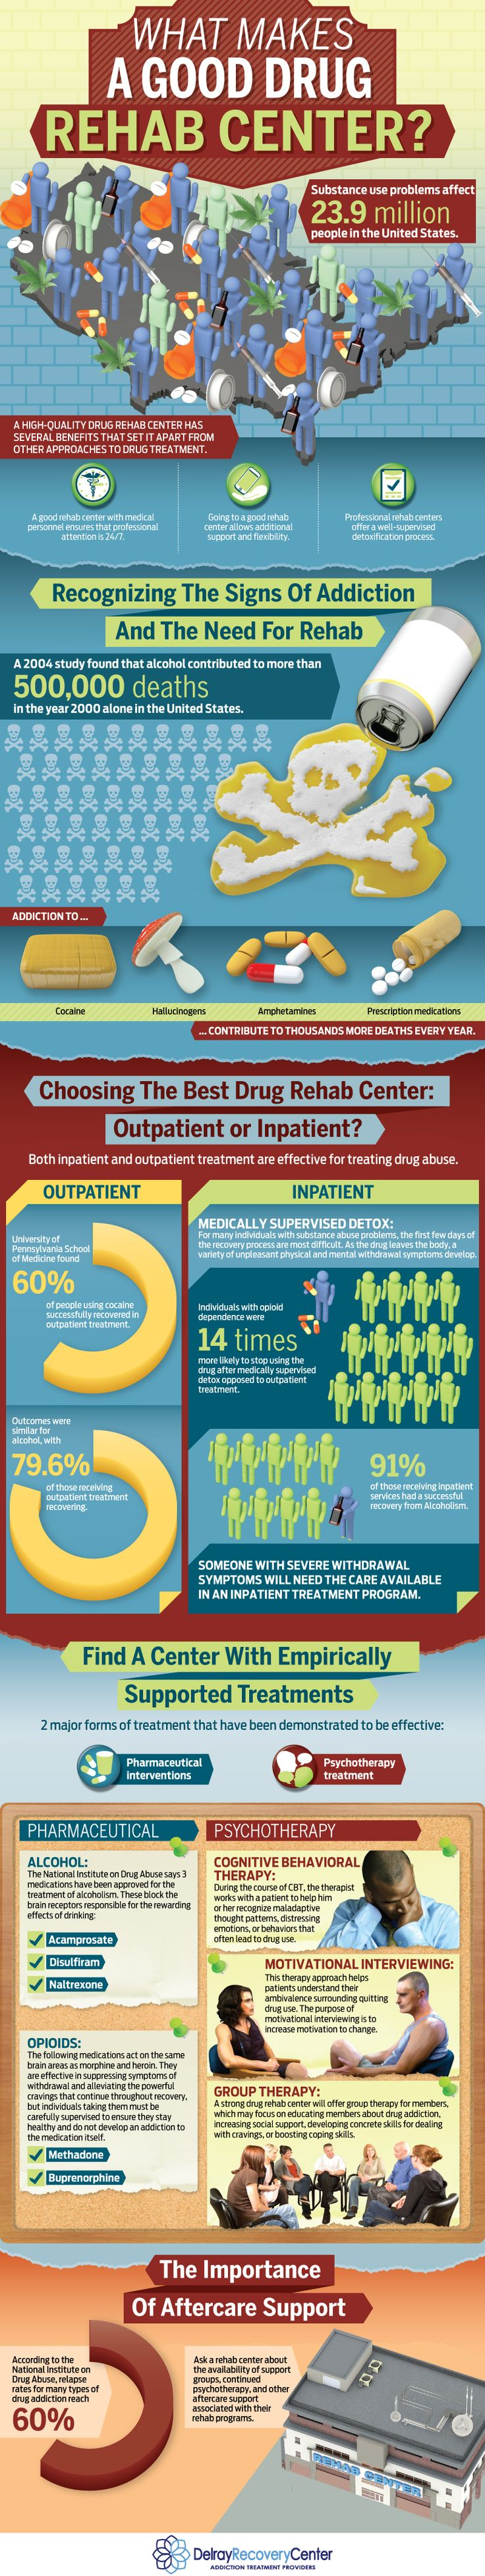 Learn More About The Different Addiction Treatment Options A High Quality Drug Rehab Center